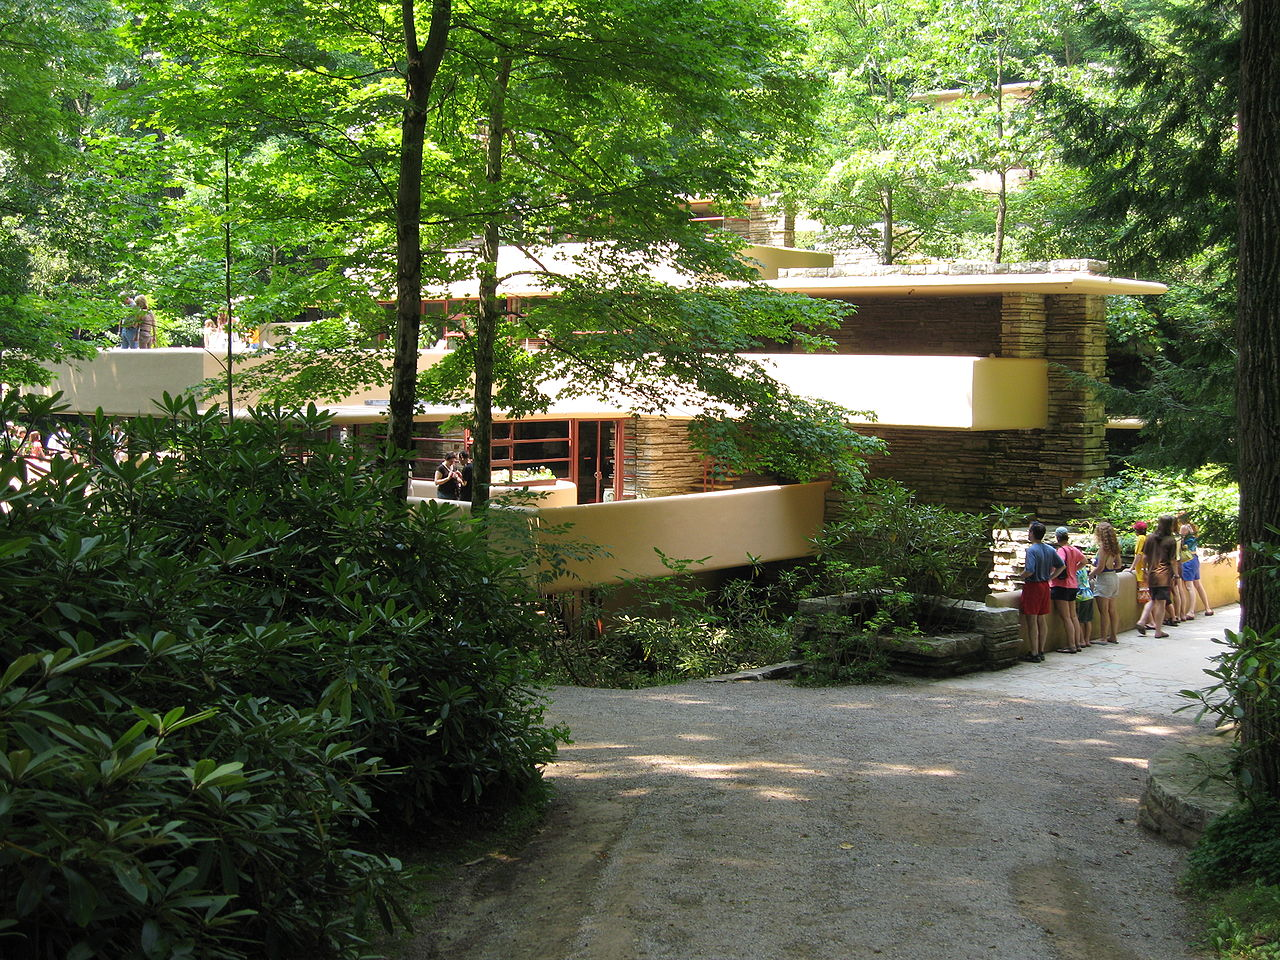 A Film on Fallingwater